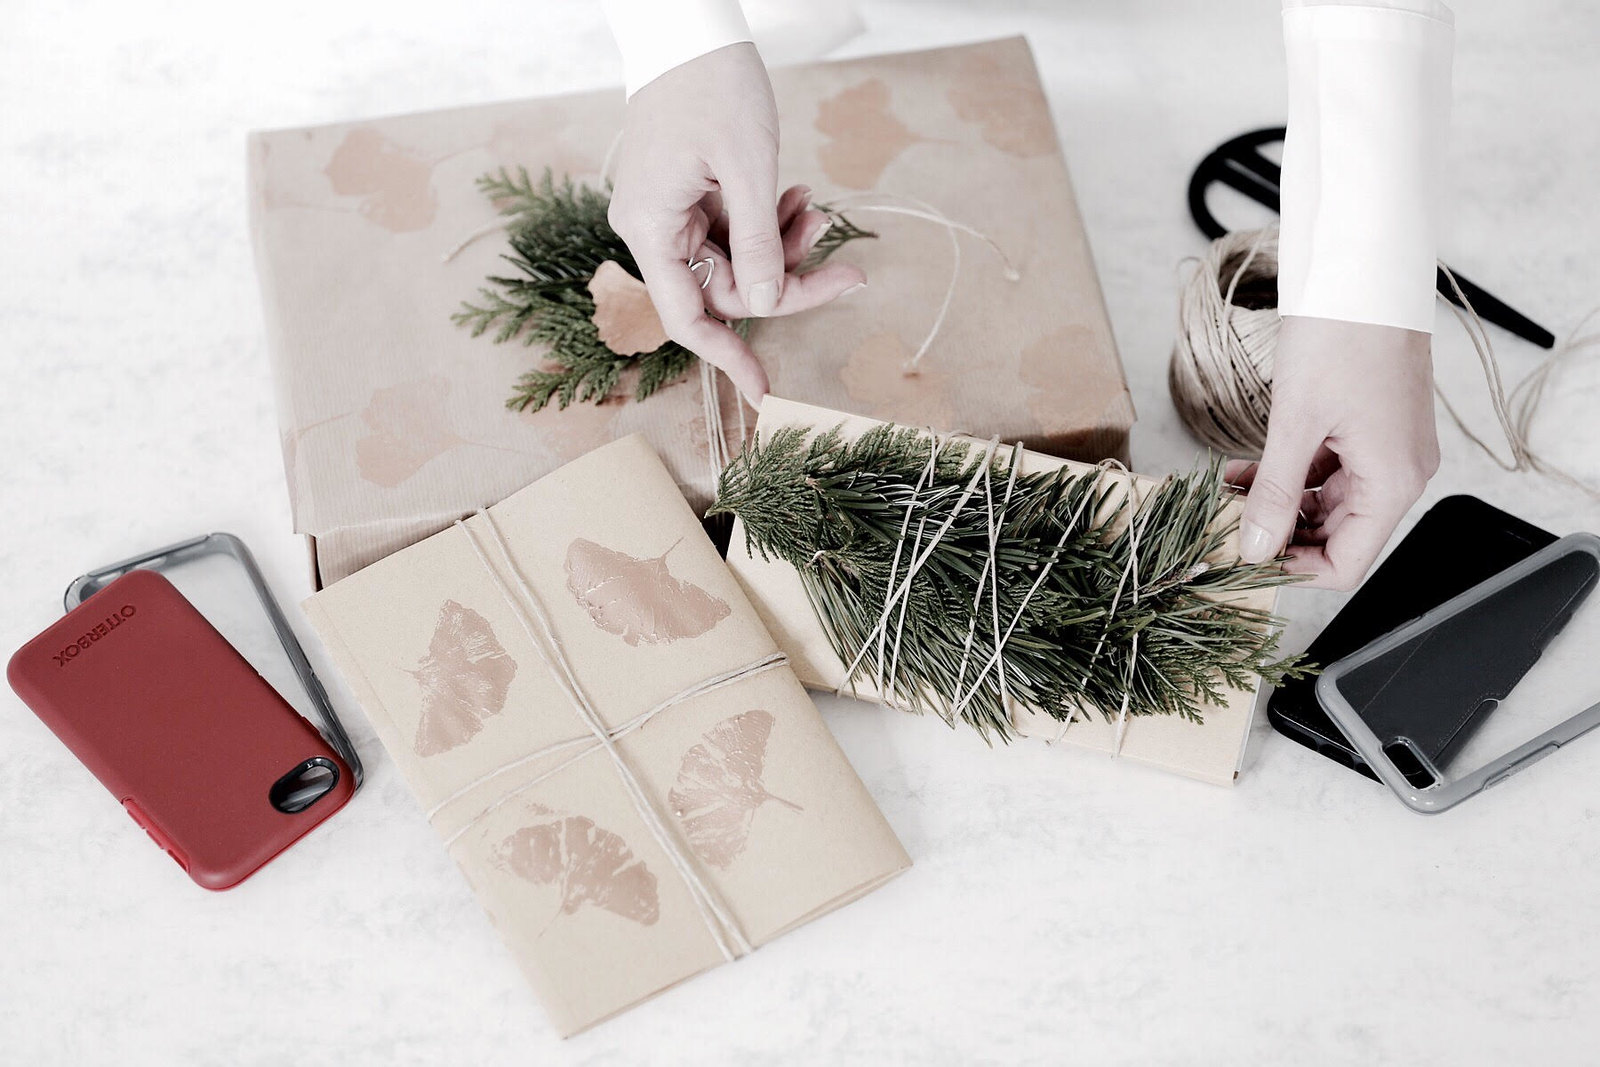 DIY christmas gift wrapping natural material fir paper minimal interior decor OtterBox mobile phone accessory white bright brunette bangs girl do it yourself cats & dogs lifestyleblogger ricarda schernus modeblog berlin düsseldorf germany 3